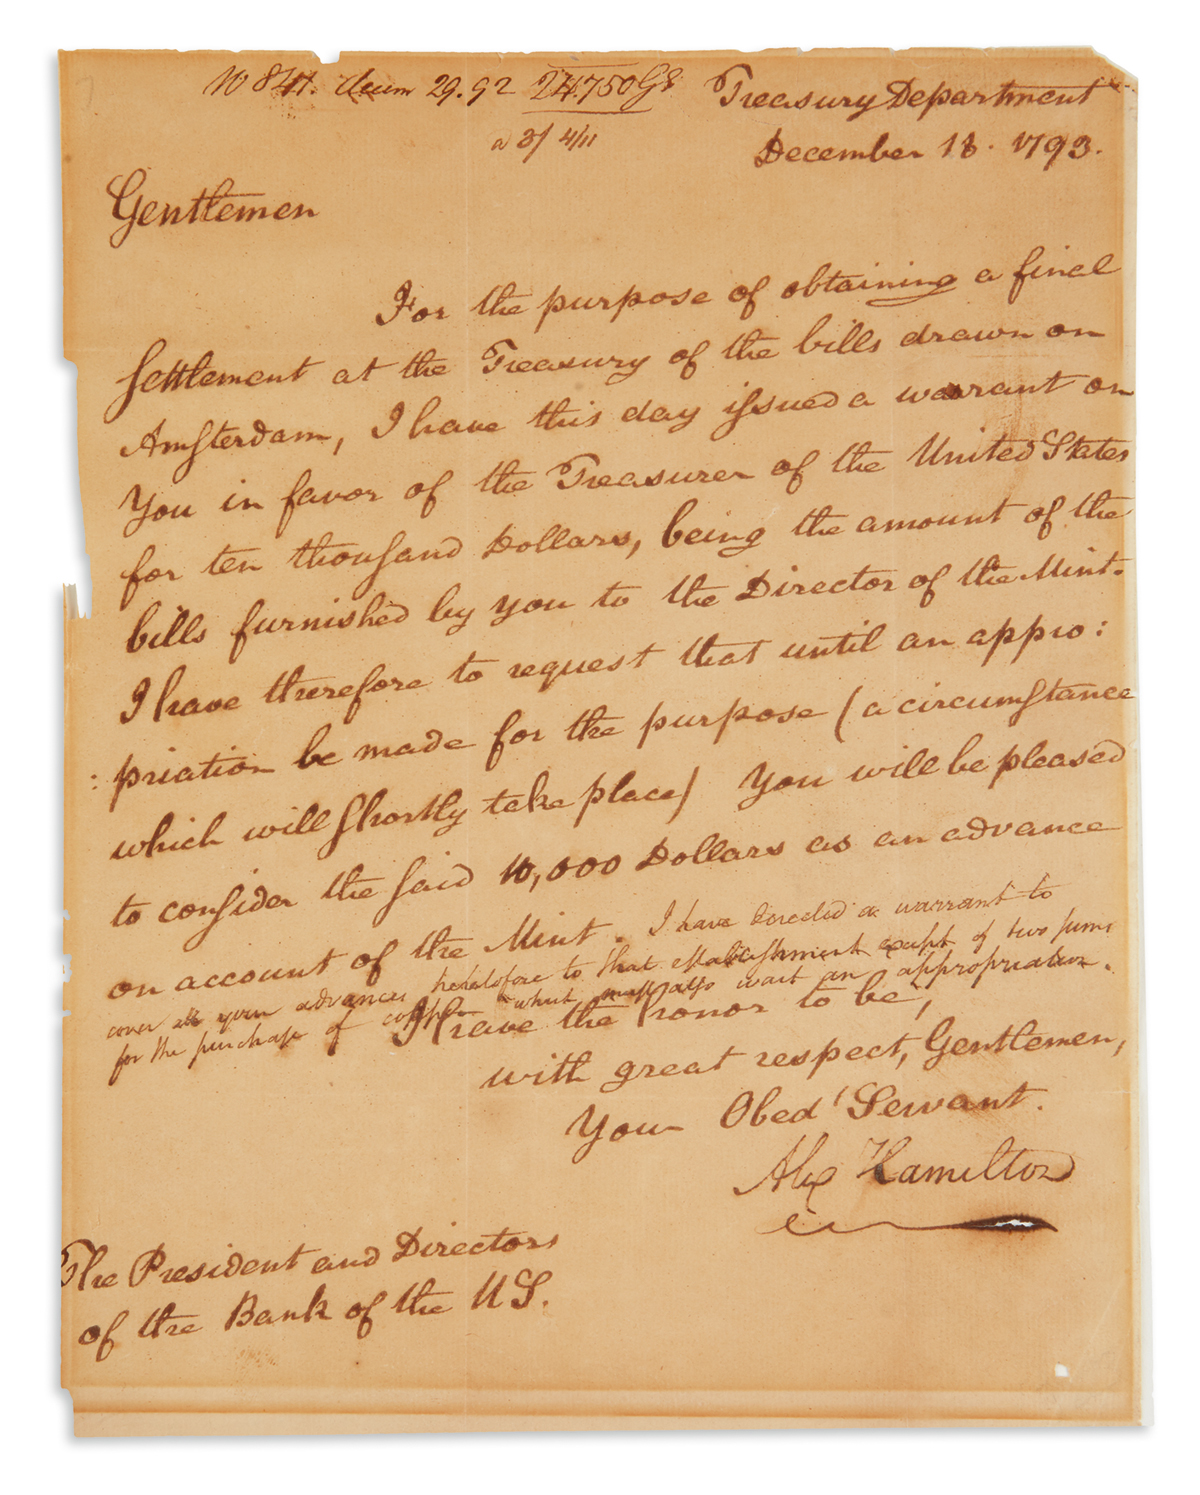 HAMILTON, ALEXANDER. Letter Signed, Alex Hamilton, as Secretary of the Treasury, to the President and Directors of the Bank of the U.